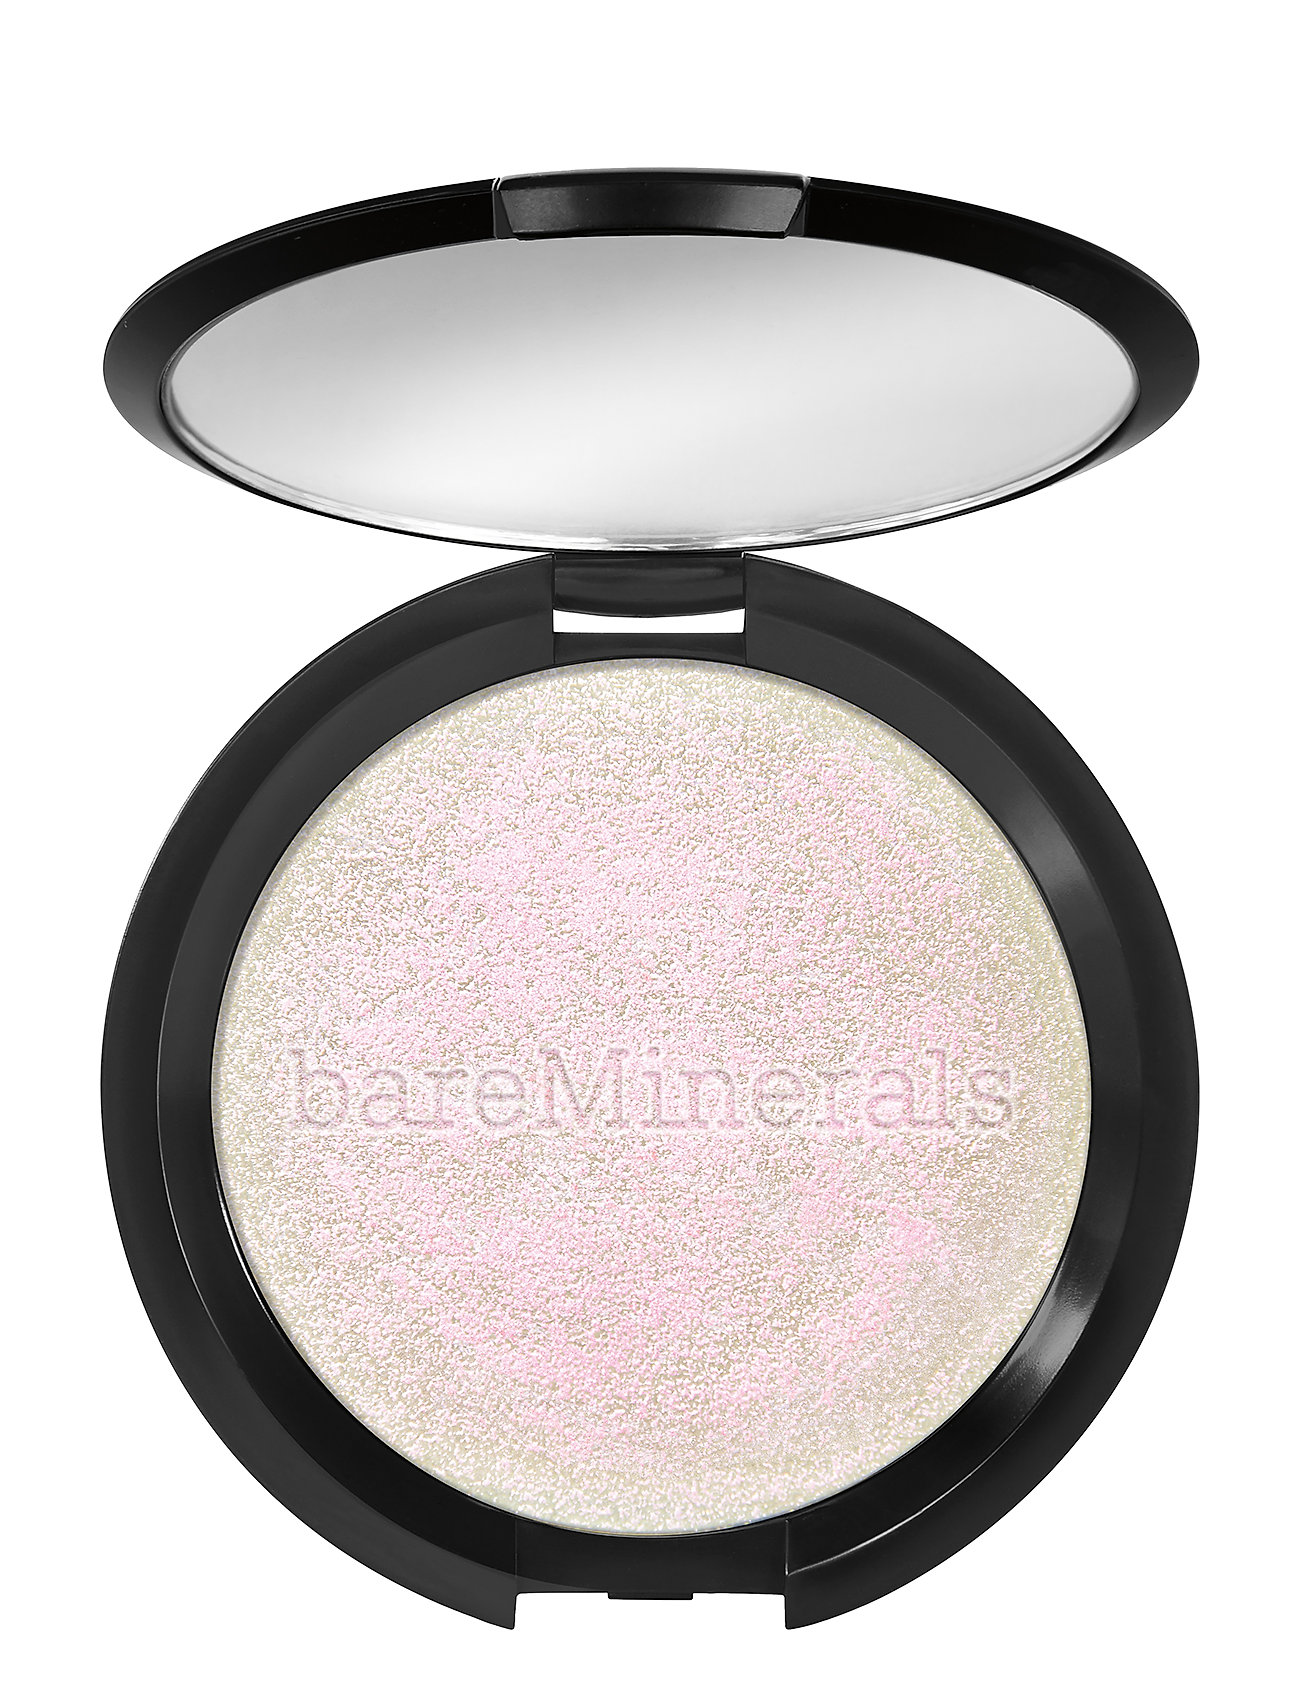 Image of Endless Glow Highlighter Whimsy Highlighter Contour Makeup Multi/mønstret BareMinerals (3210823287)